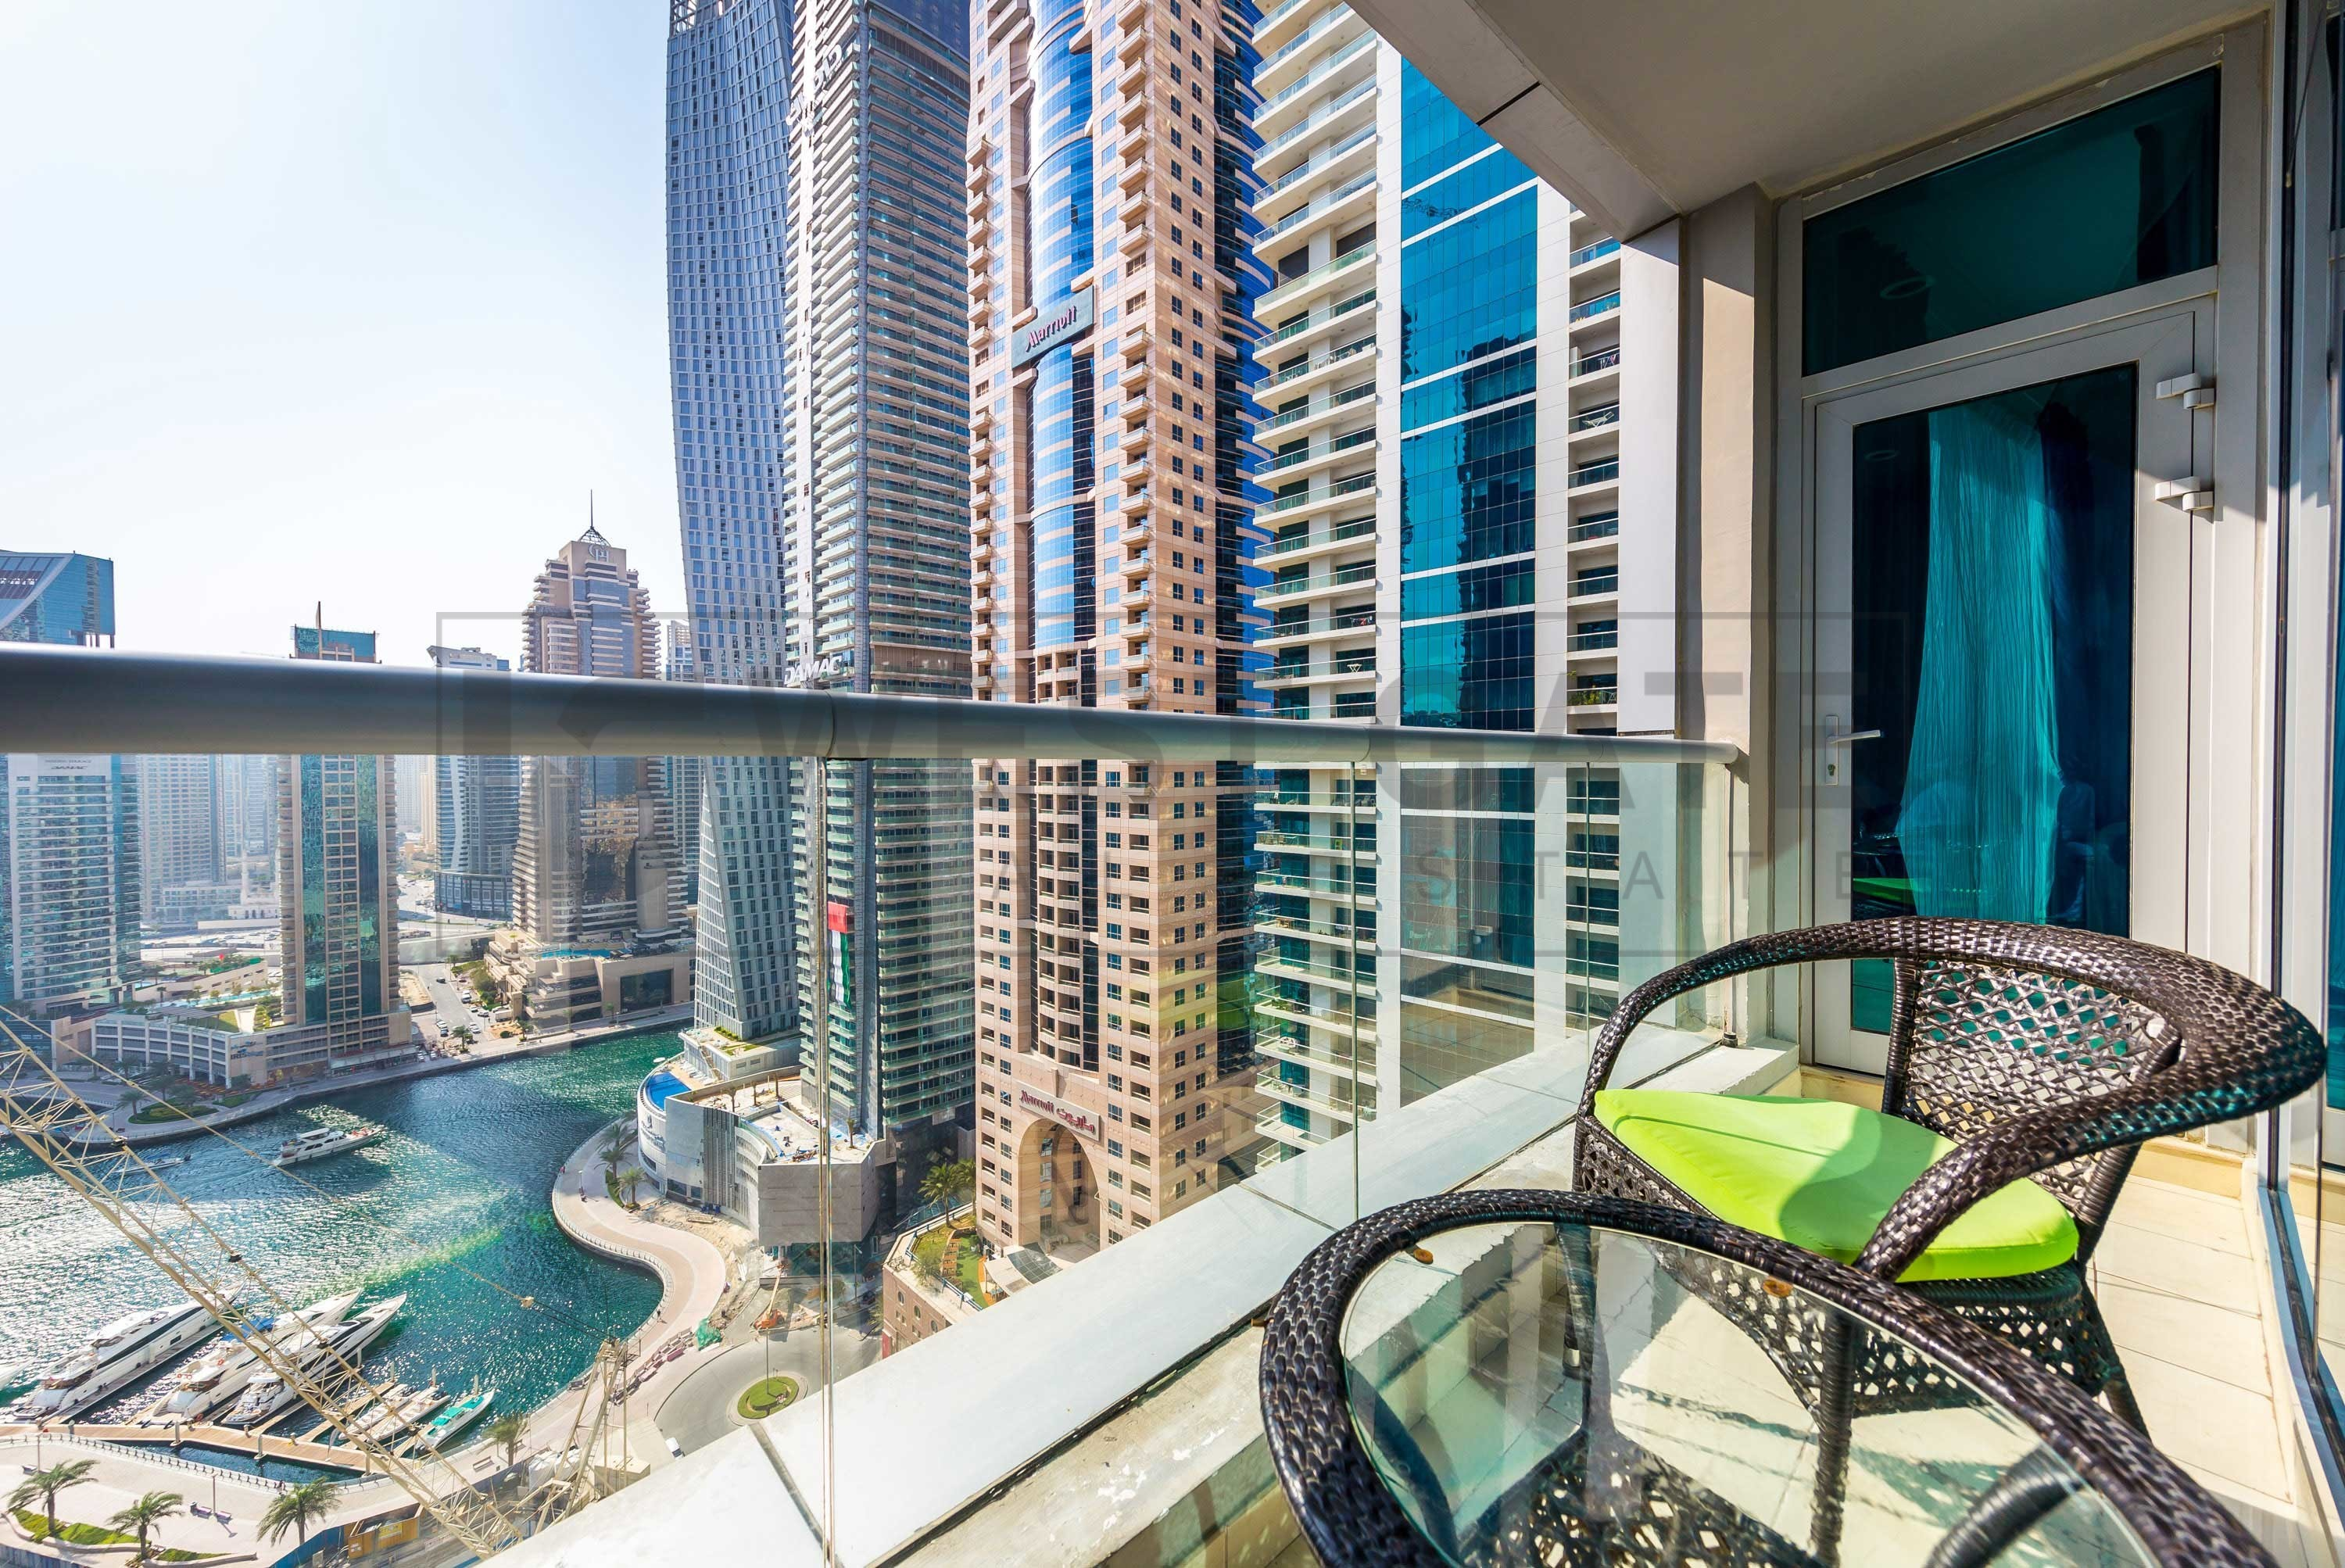 special-discount-for-summer-exceptional-1-br-in-dubai-marina-w-scenic-views